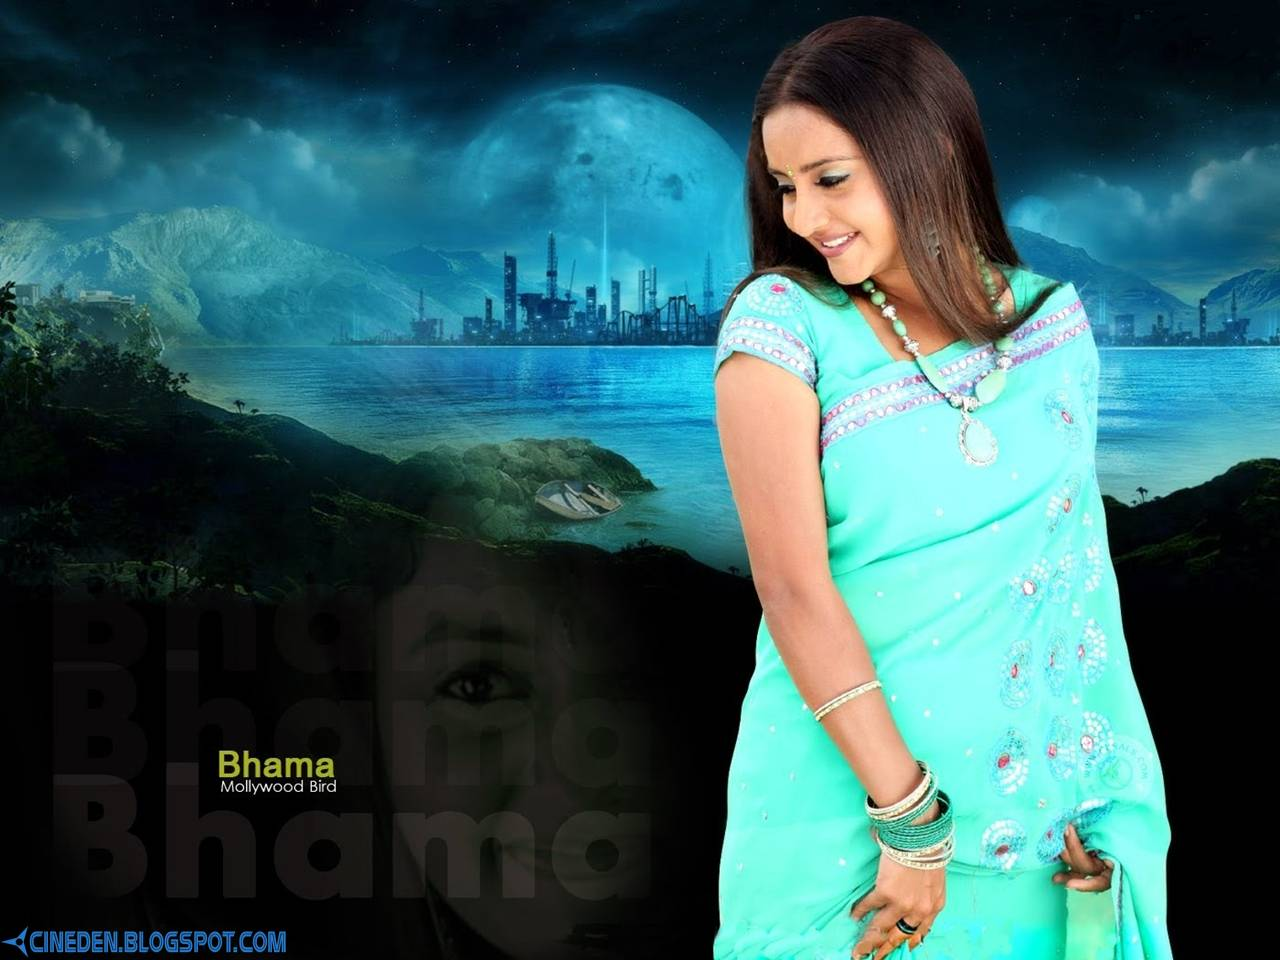 Bhama on a roll